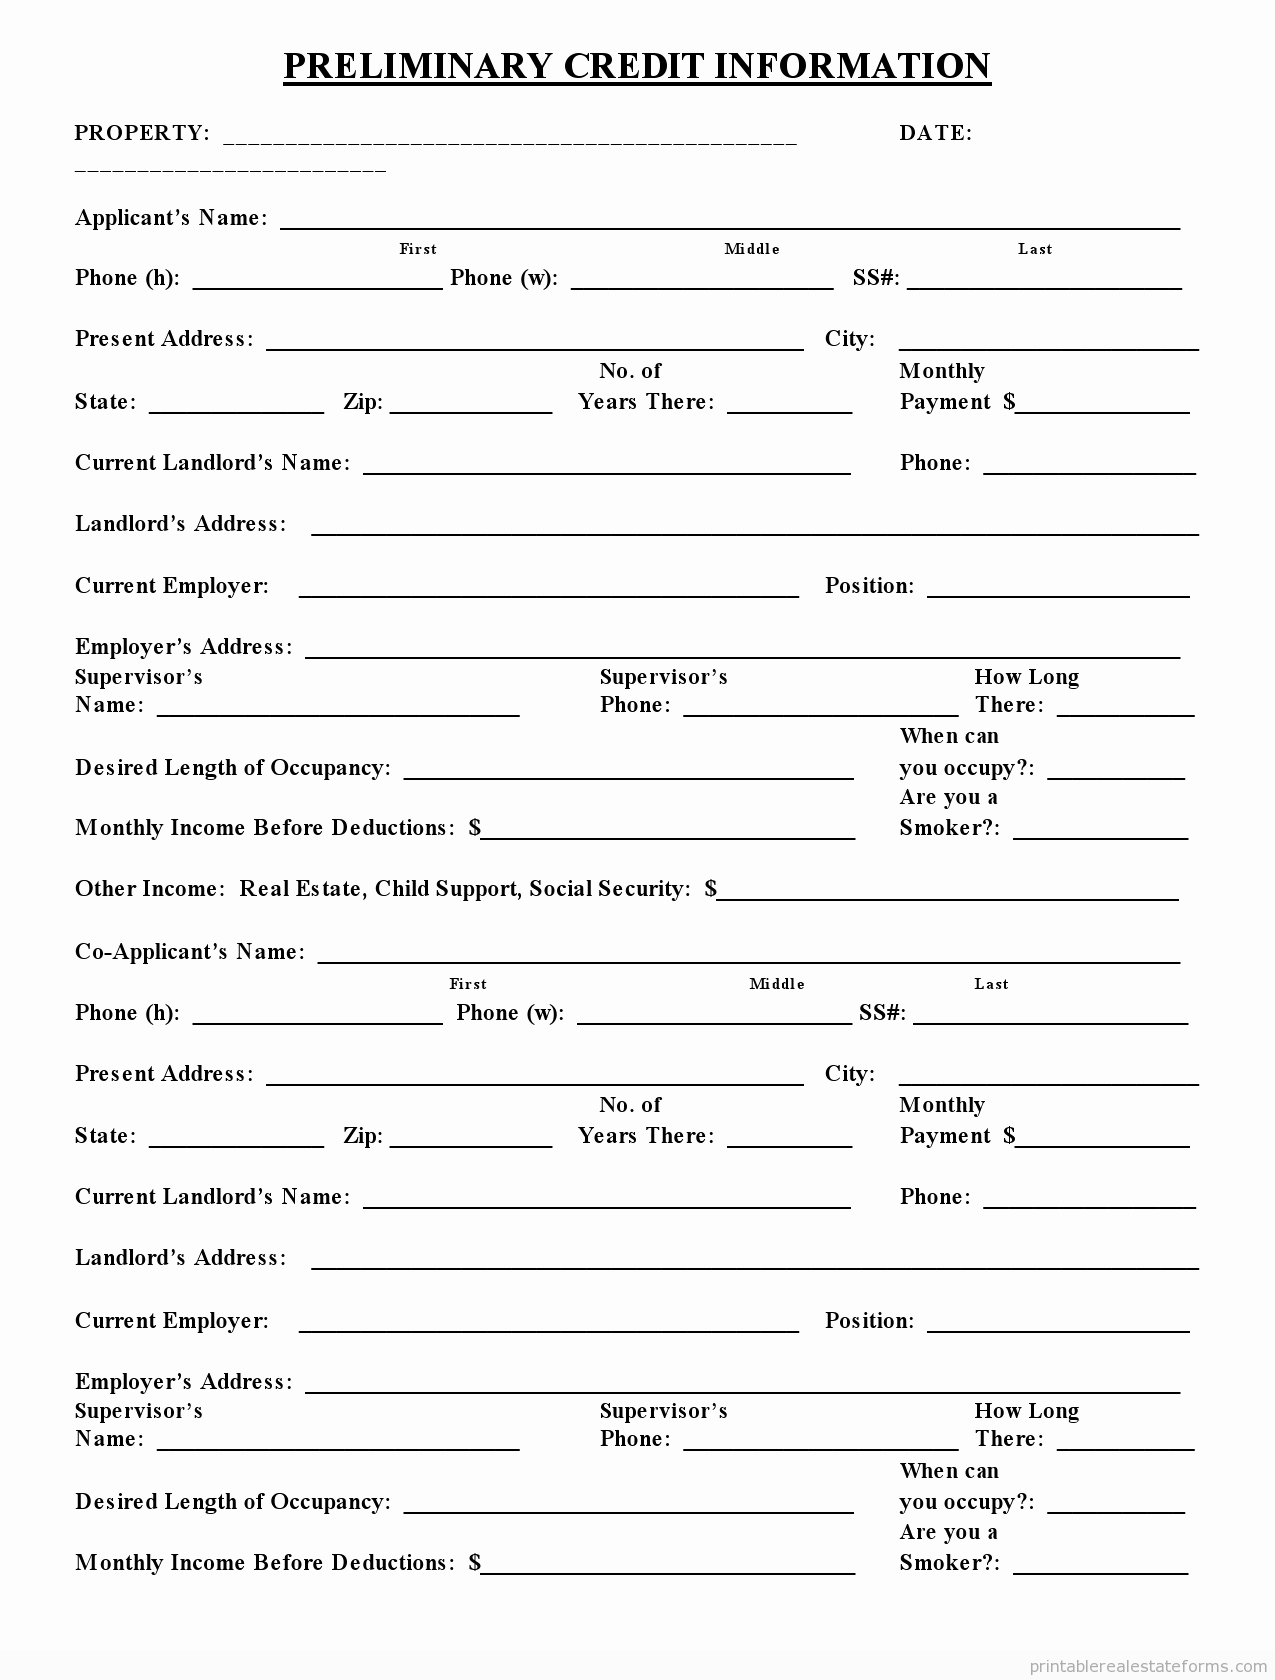 Sample Of Credit Application form Unique Sample Printable Preliminary Credit Application form